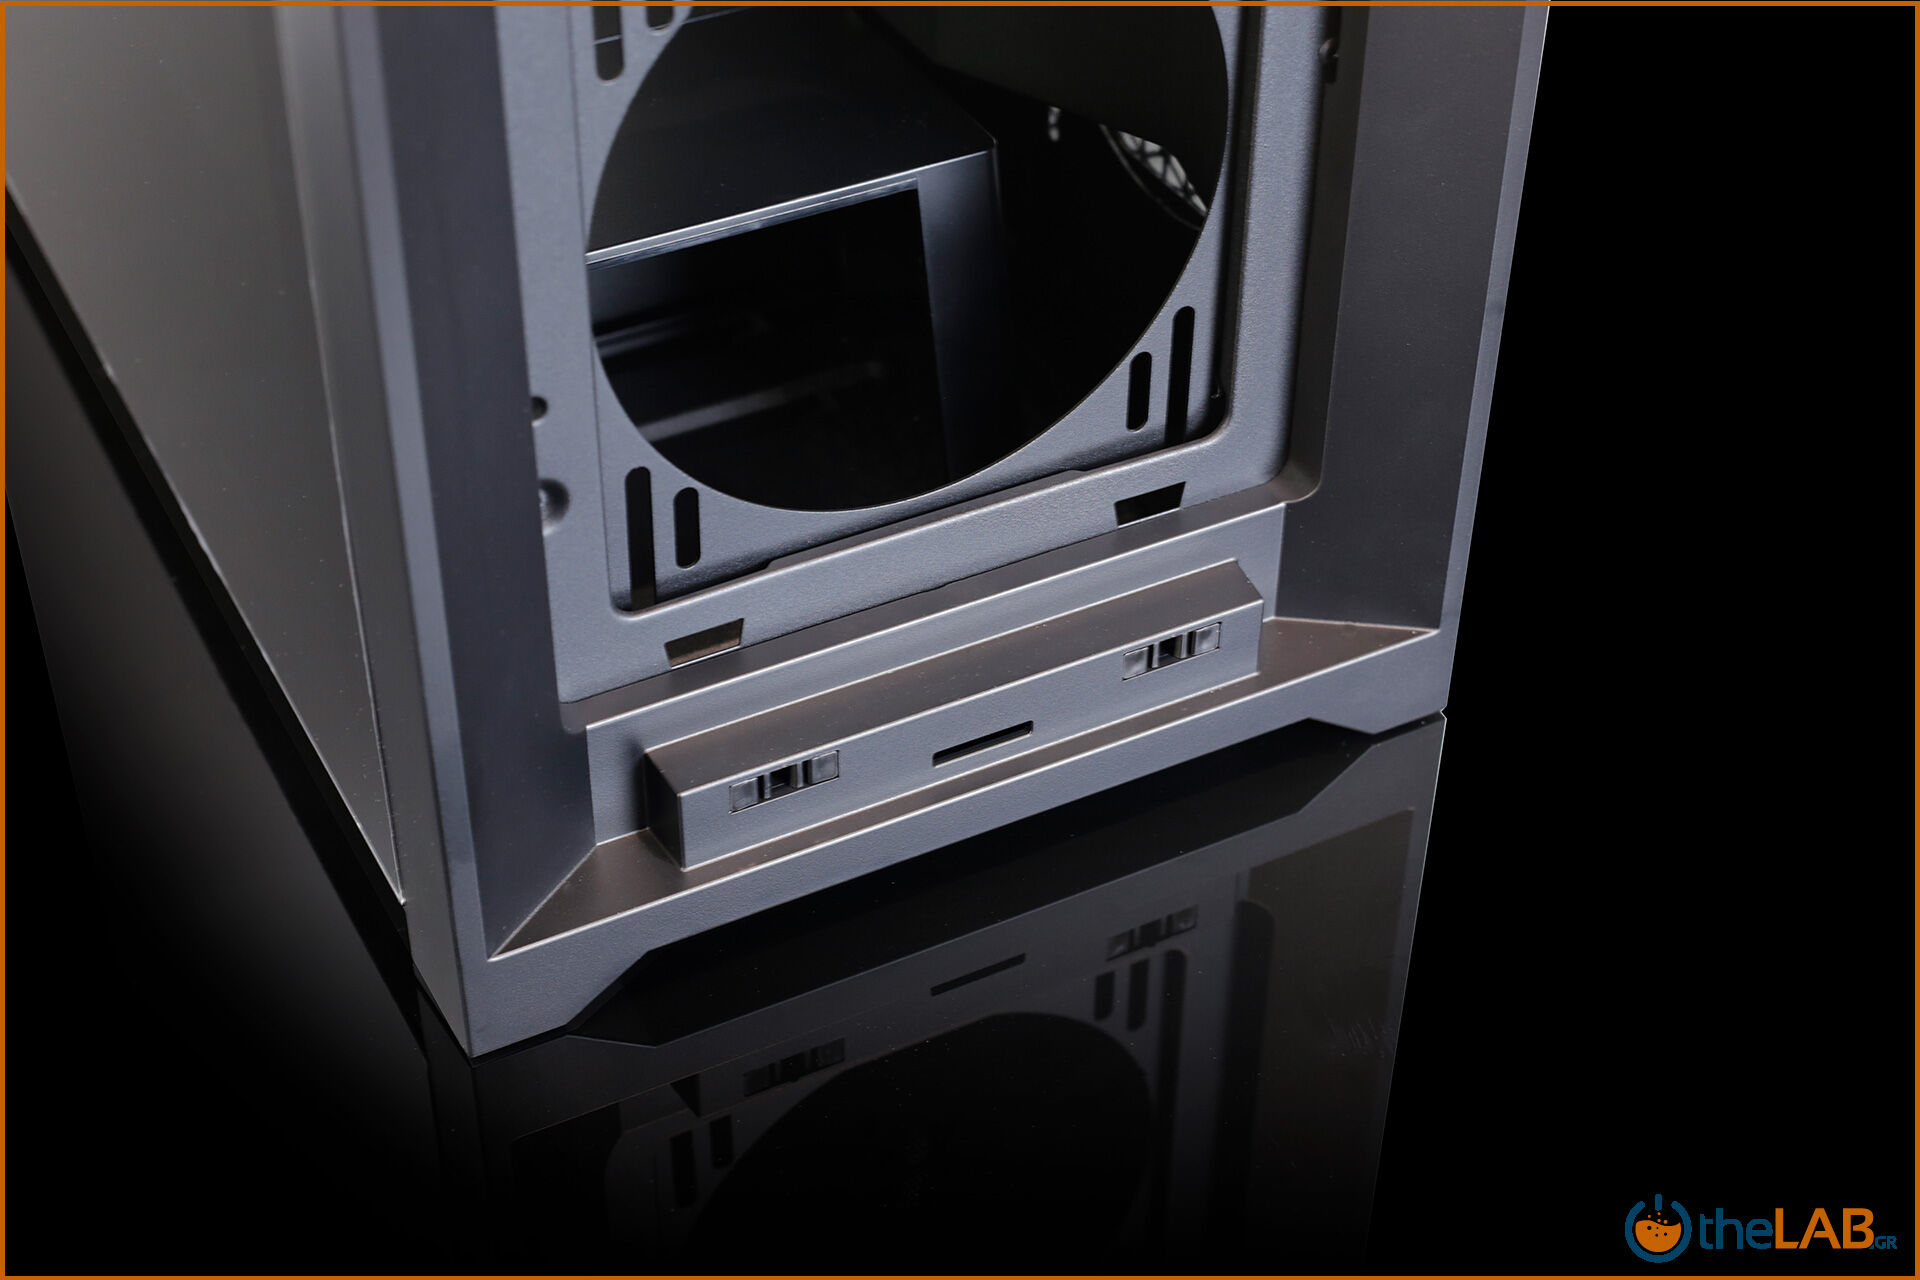 Corsair_icue_5000D__case_smart_exterior_interior_mid_tower_gaming_case_smart_review_image632.jpg